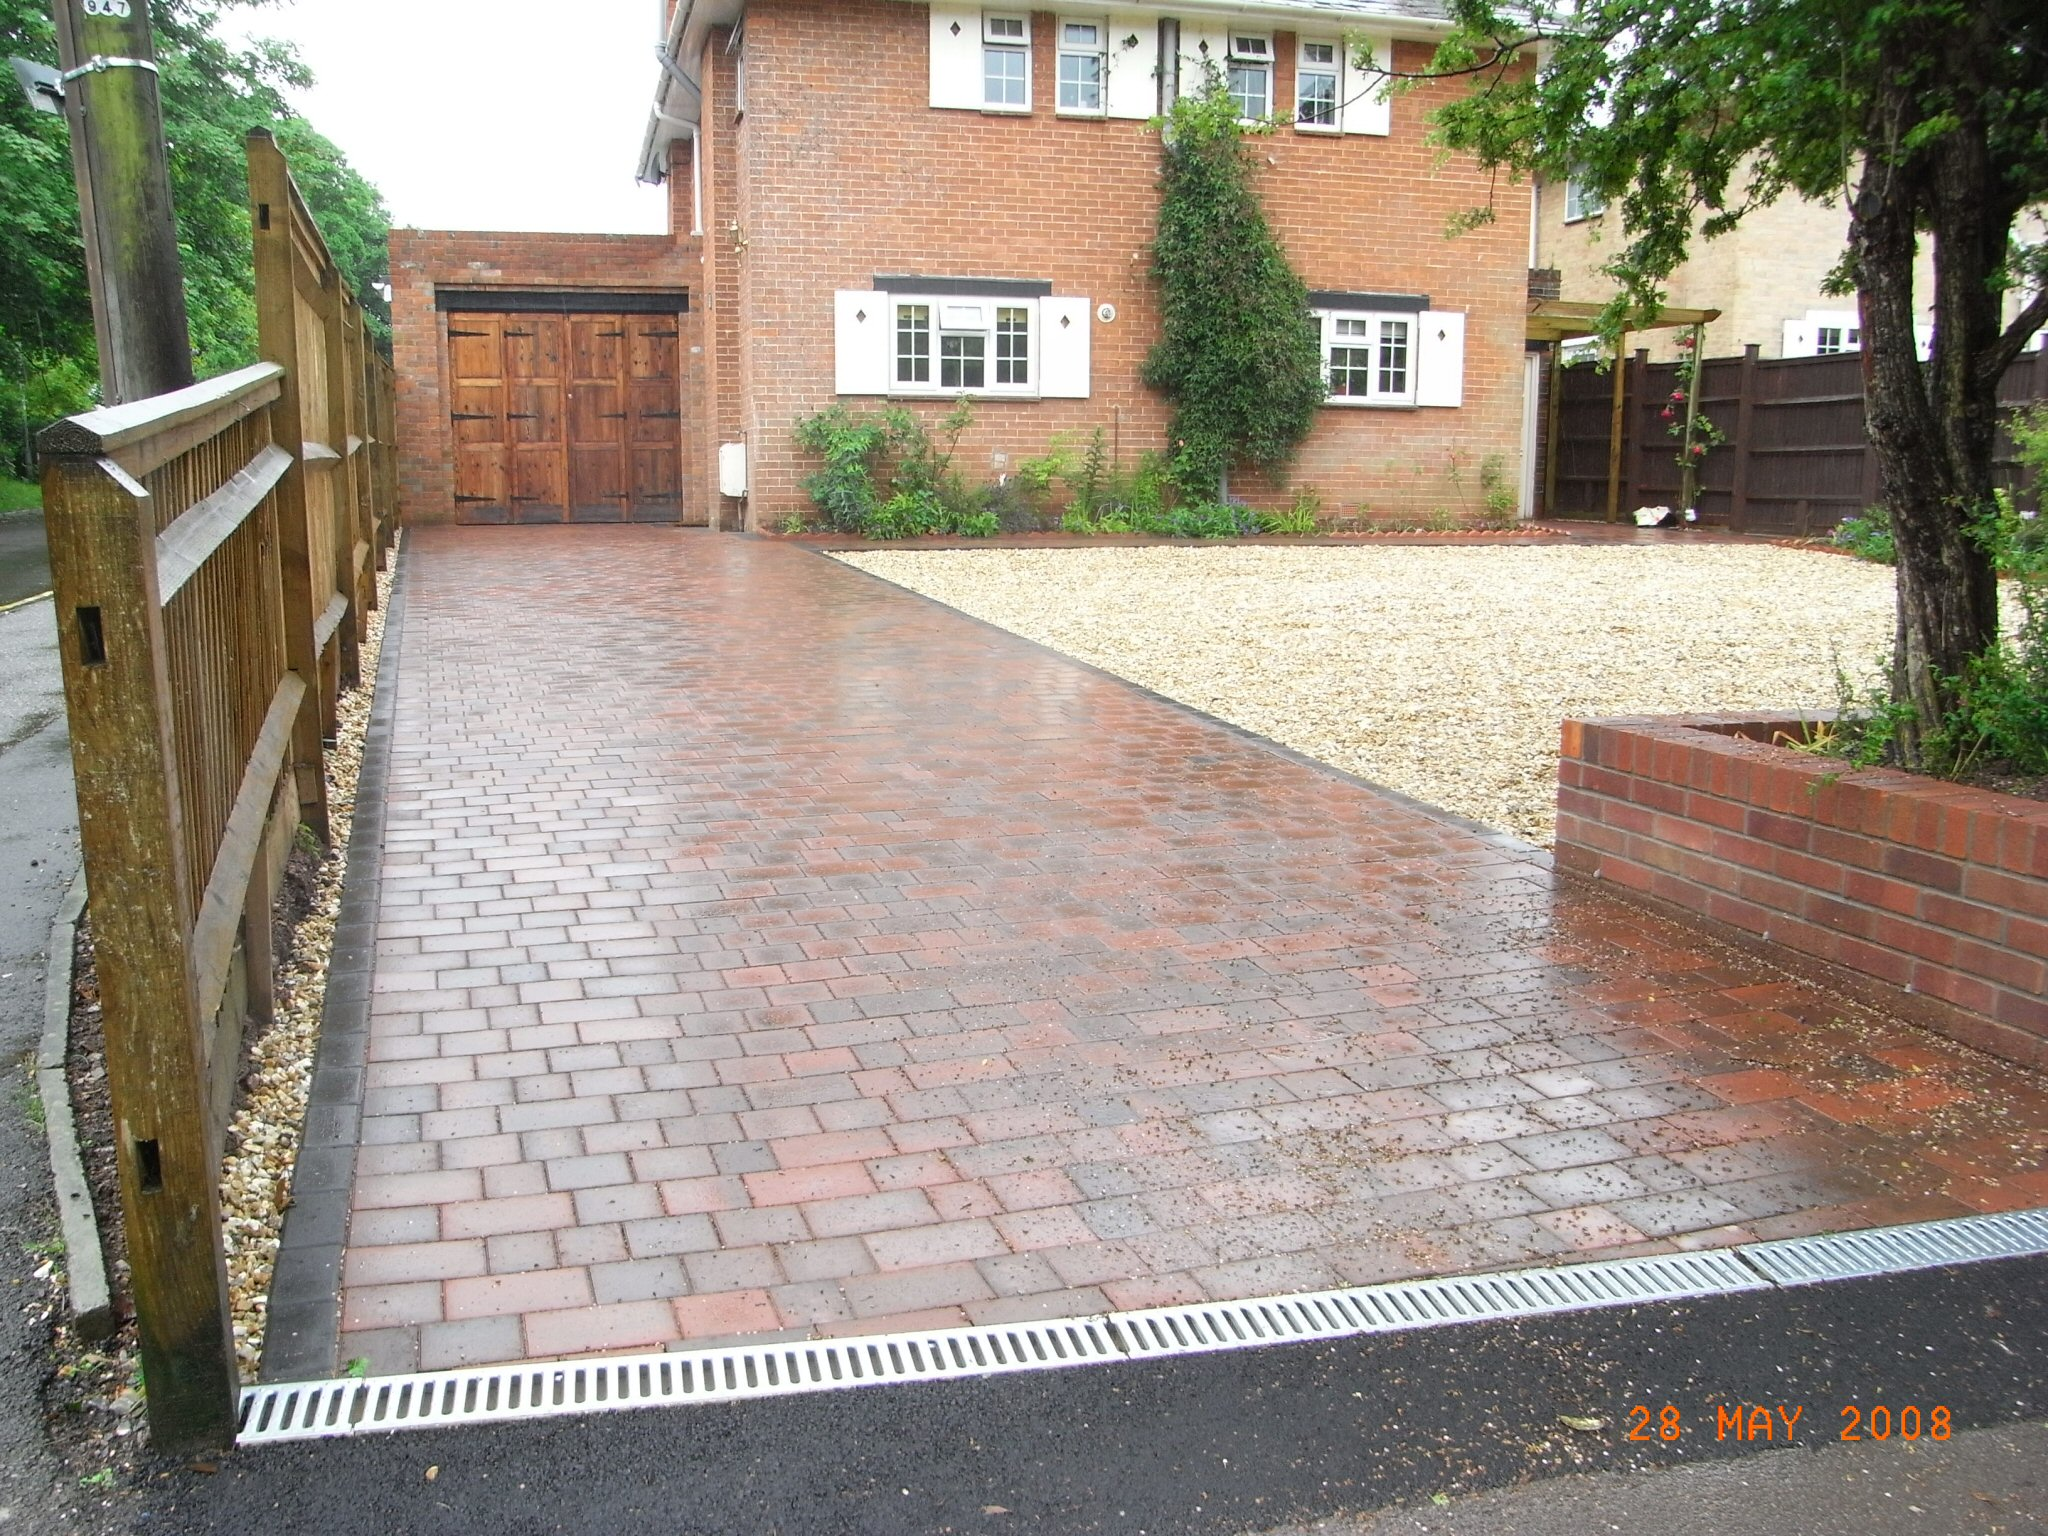 Oakmere Landscaping in Salford install driveways for customers throughout the Greater Manchester area